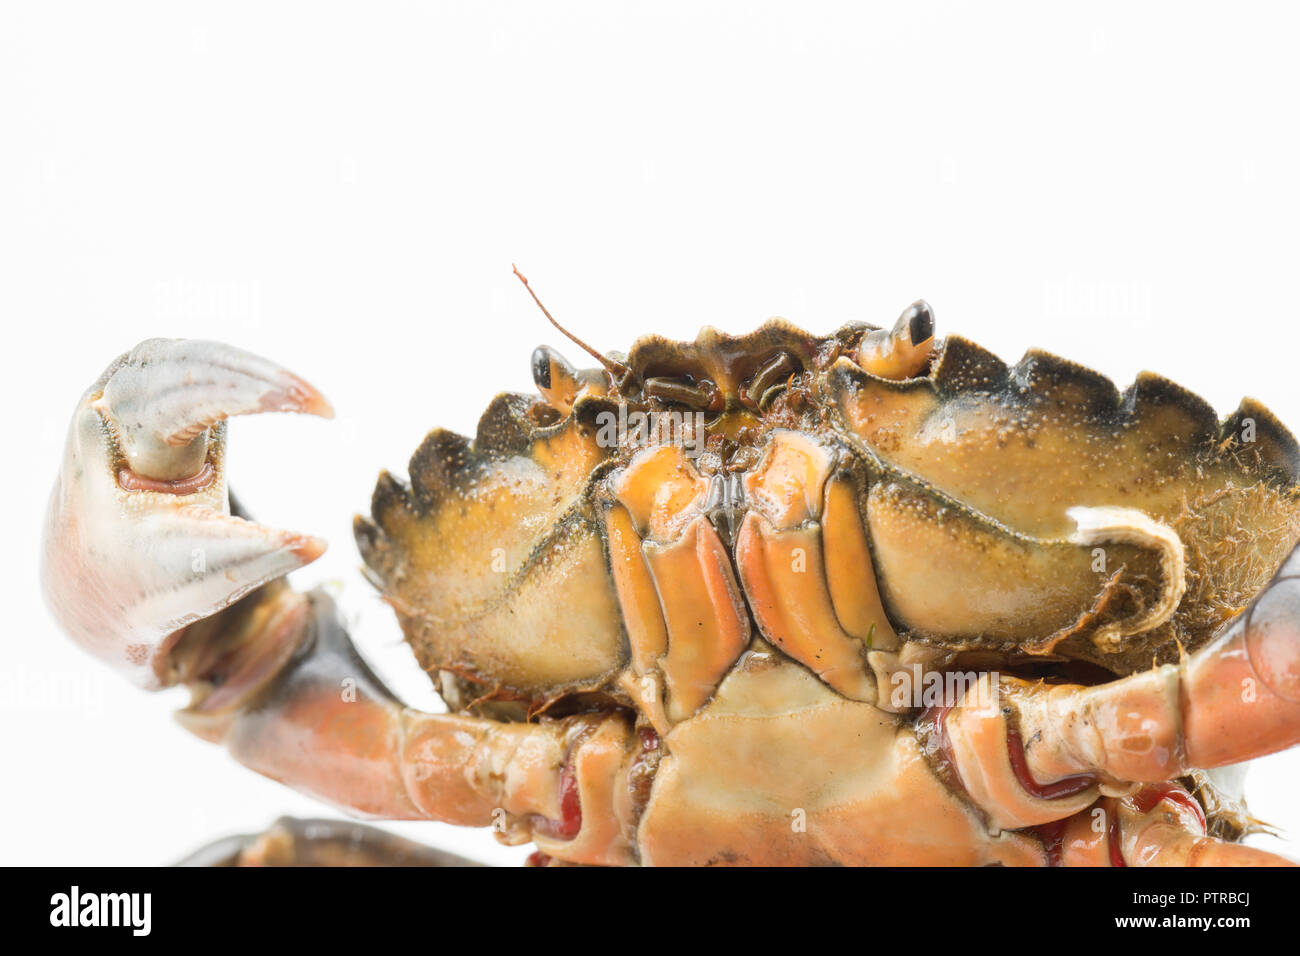 A shore crab, Carcinus maenas, also known as the european crab or green crab, photographed on a white background before release. Dorset England Stock Photo